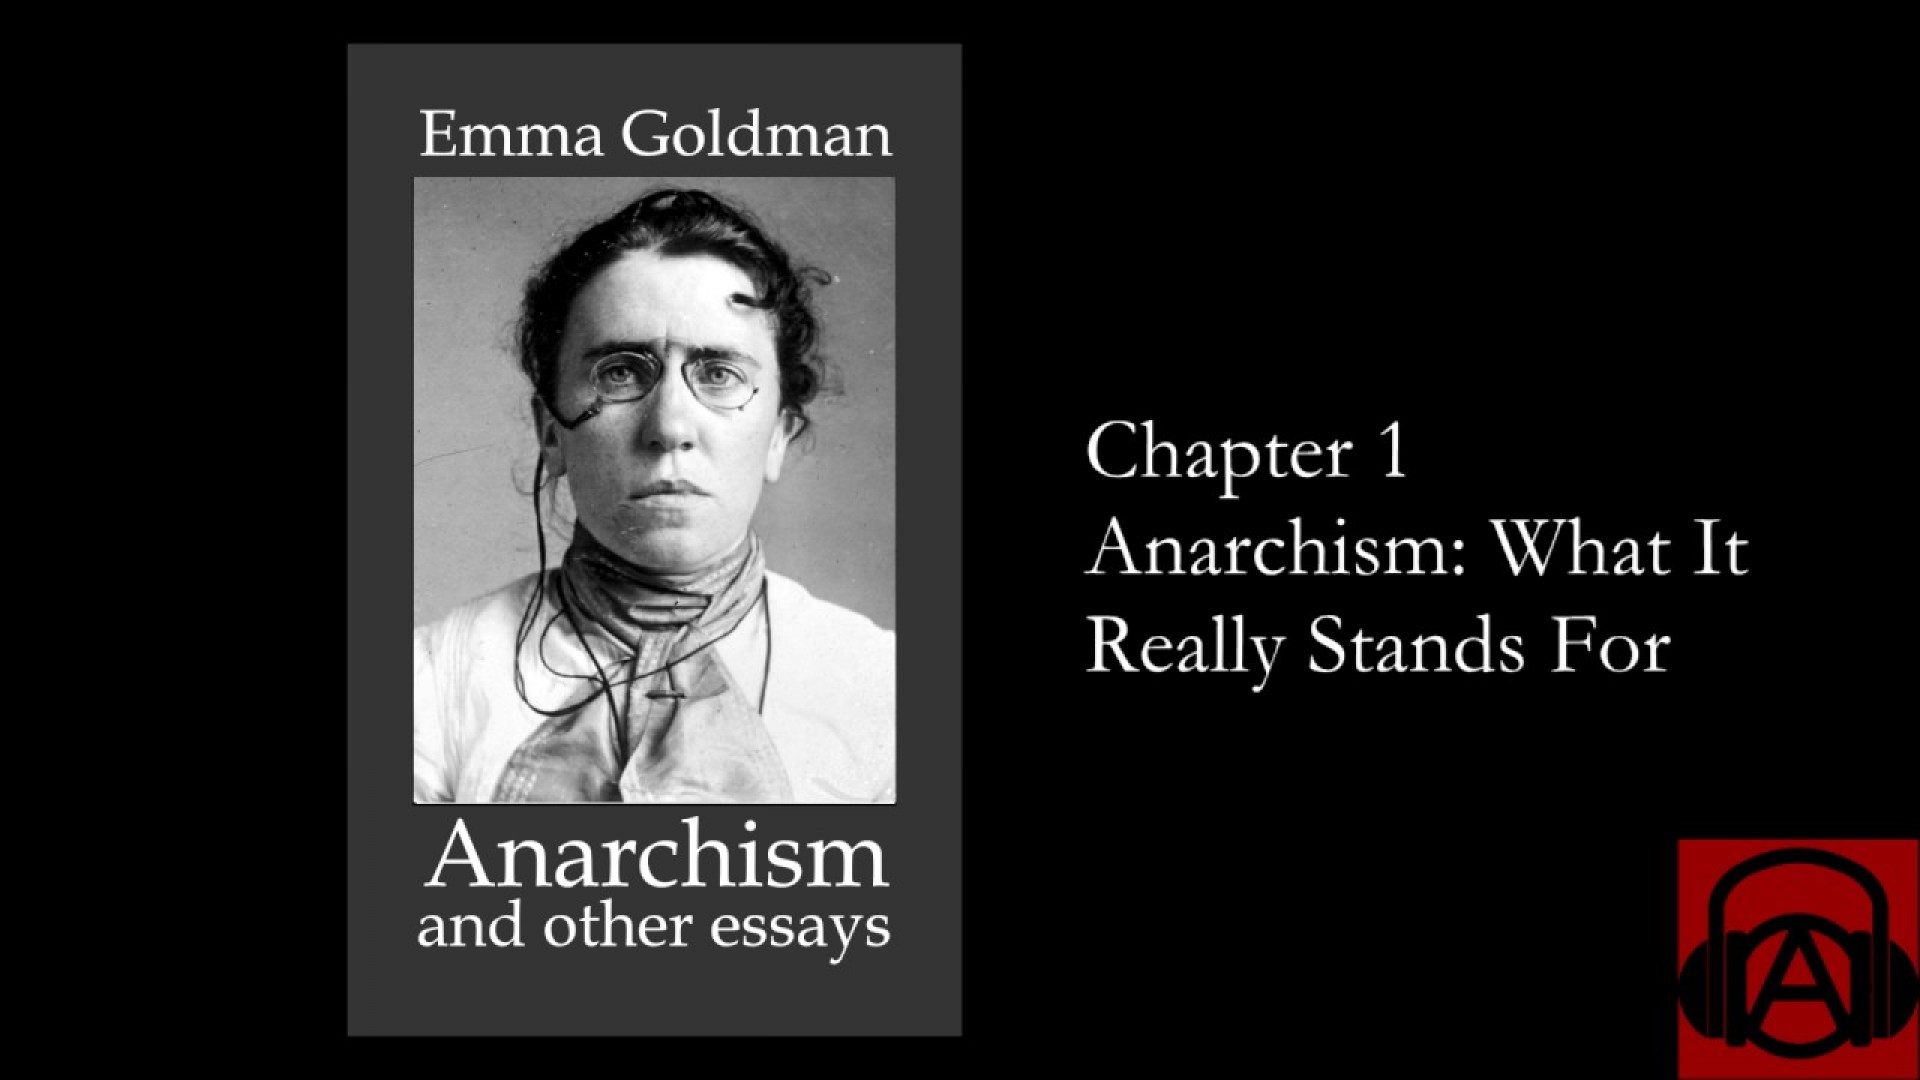 005 Anarchism And Other Essays Essay Example Incredible Emma Goldman Summary Pdf 1920